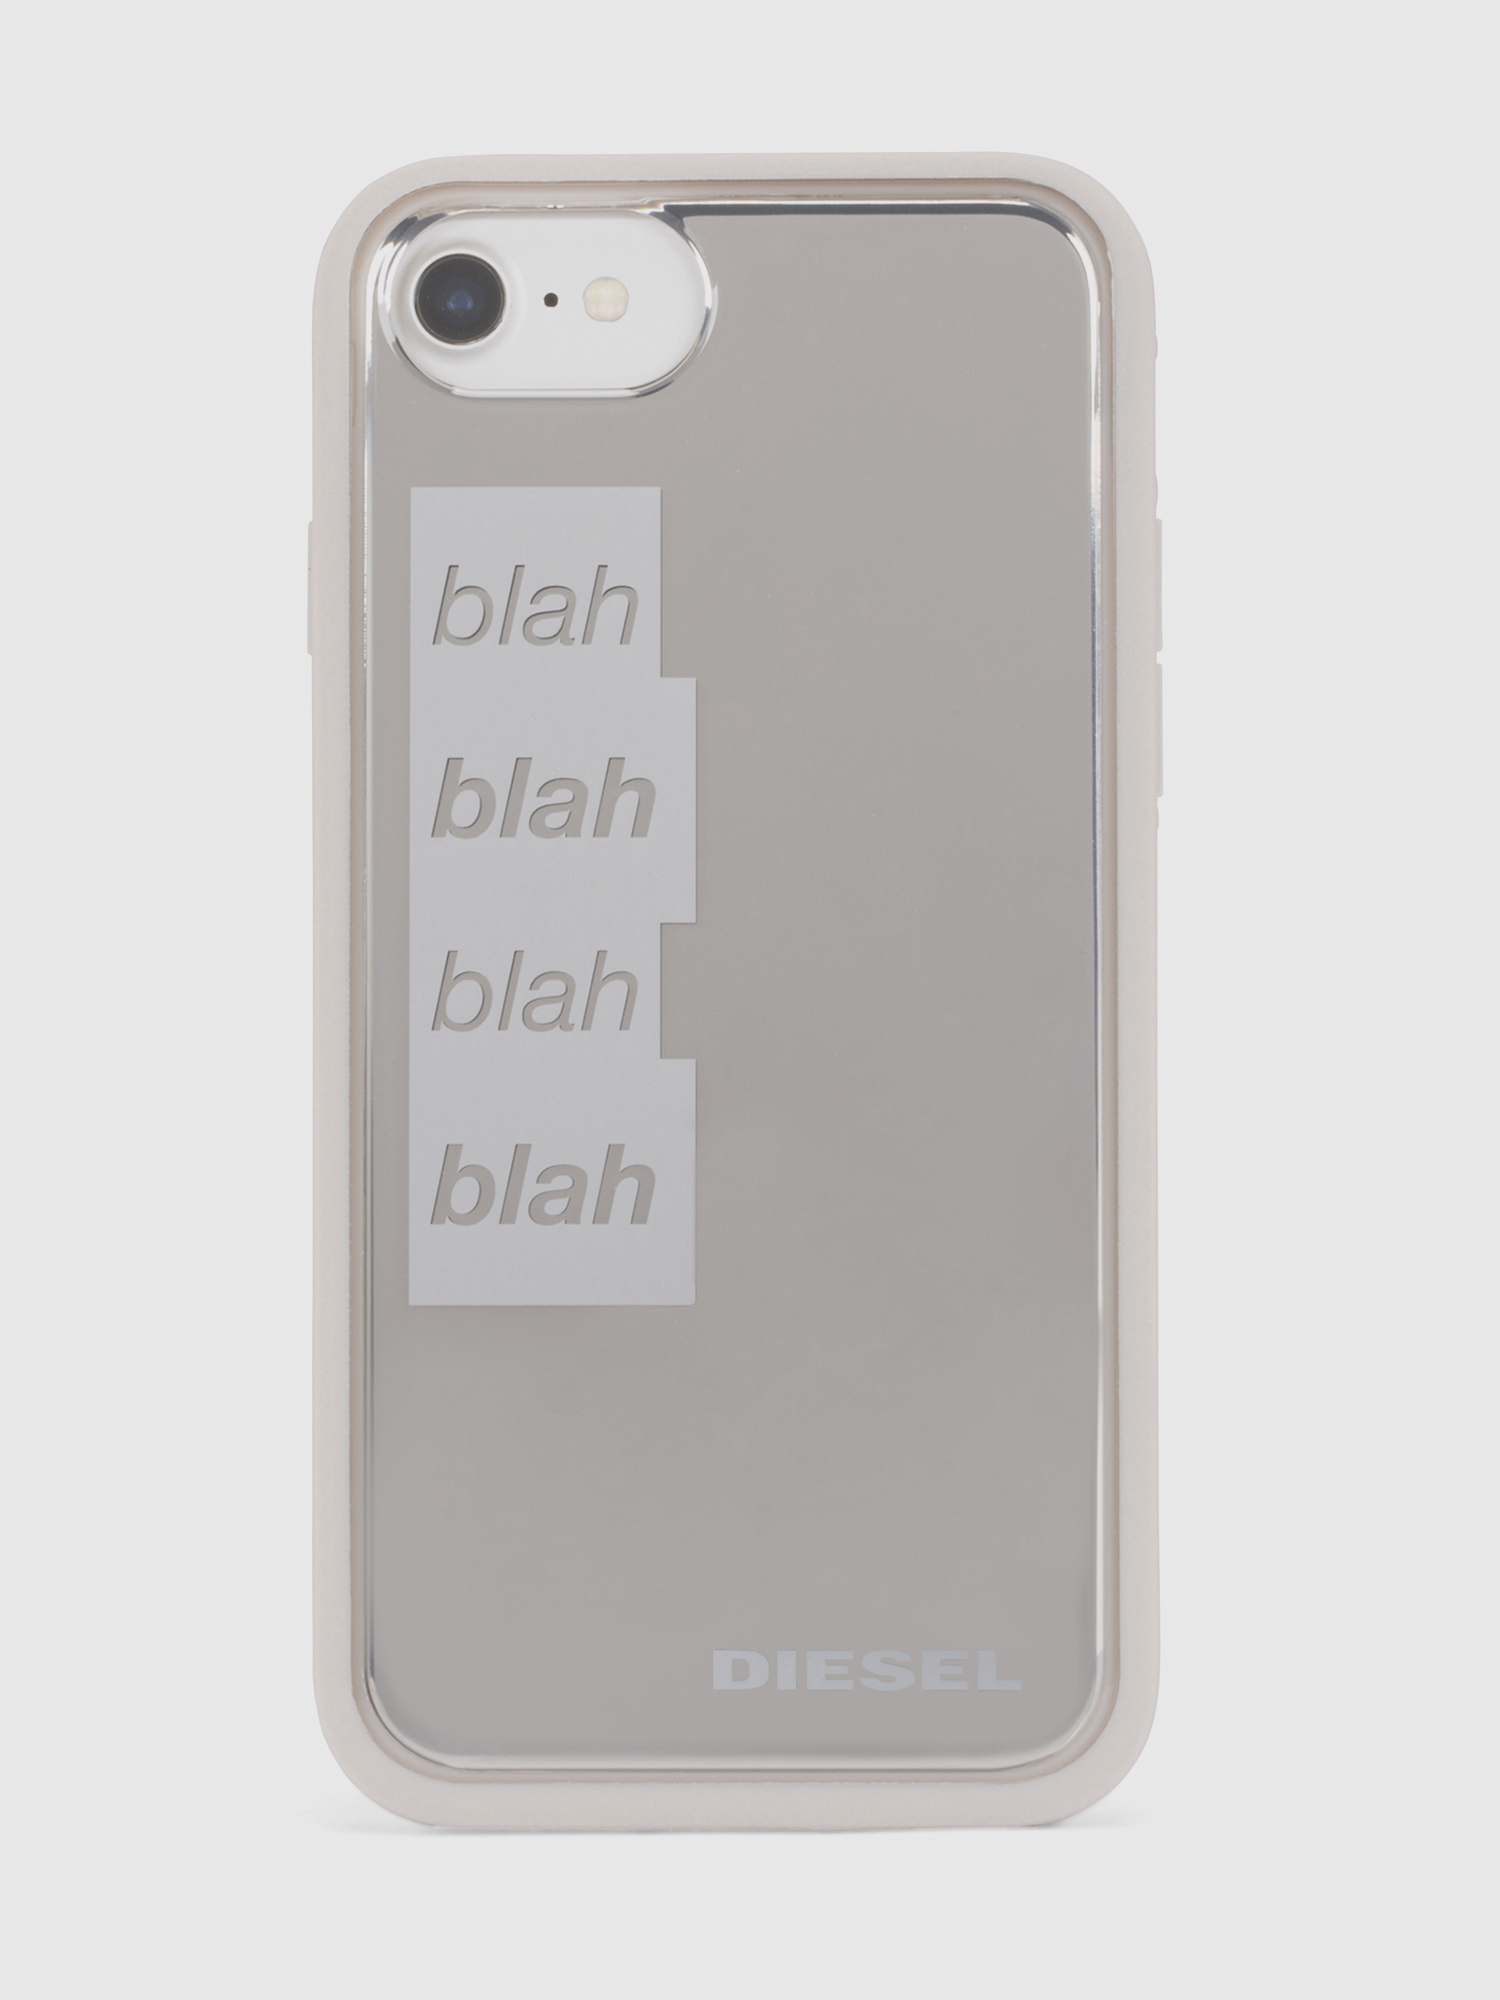 Diesel - BLAH BLAH BLAH IPHONE 8/7/6s/6 CASE,  - Cases - Image 2